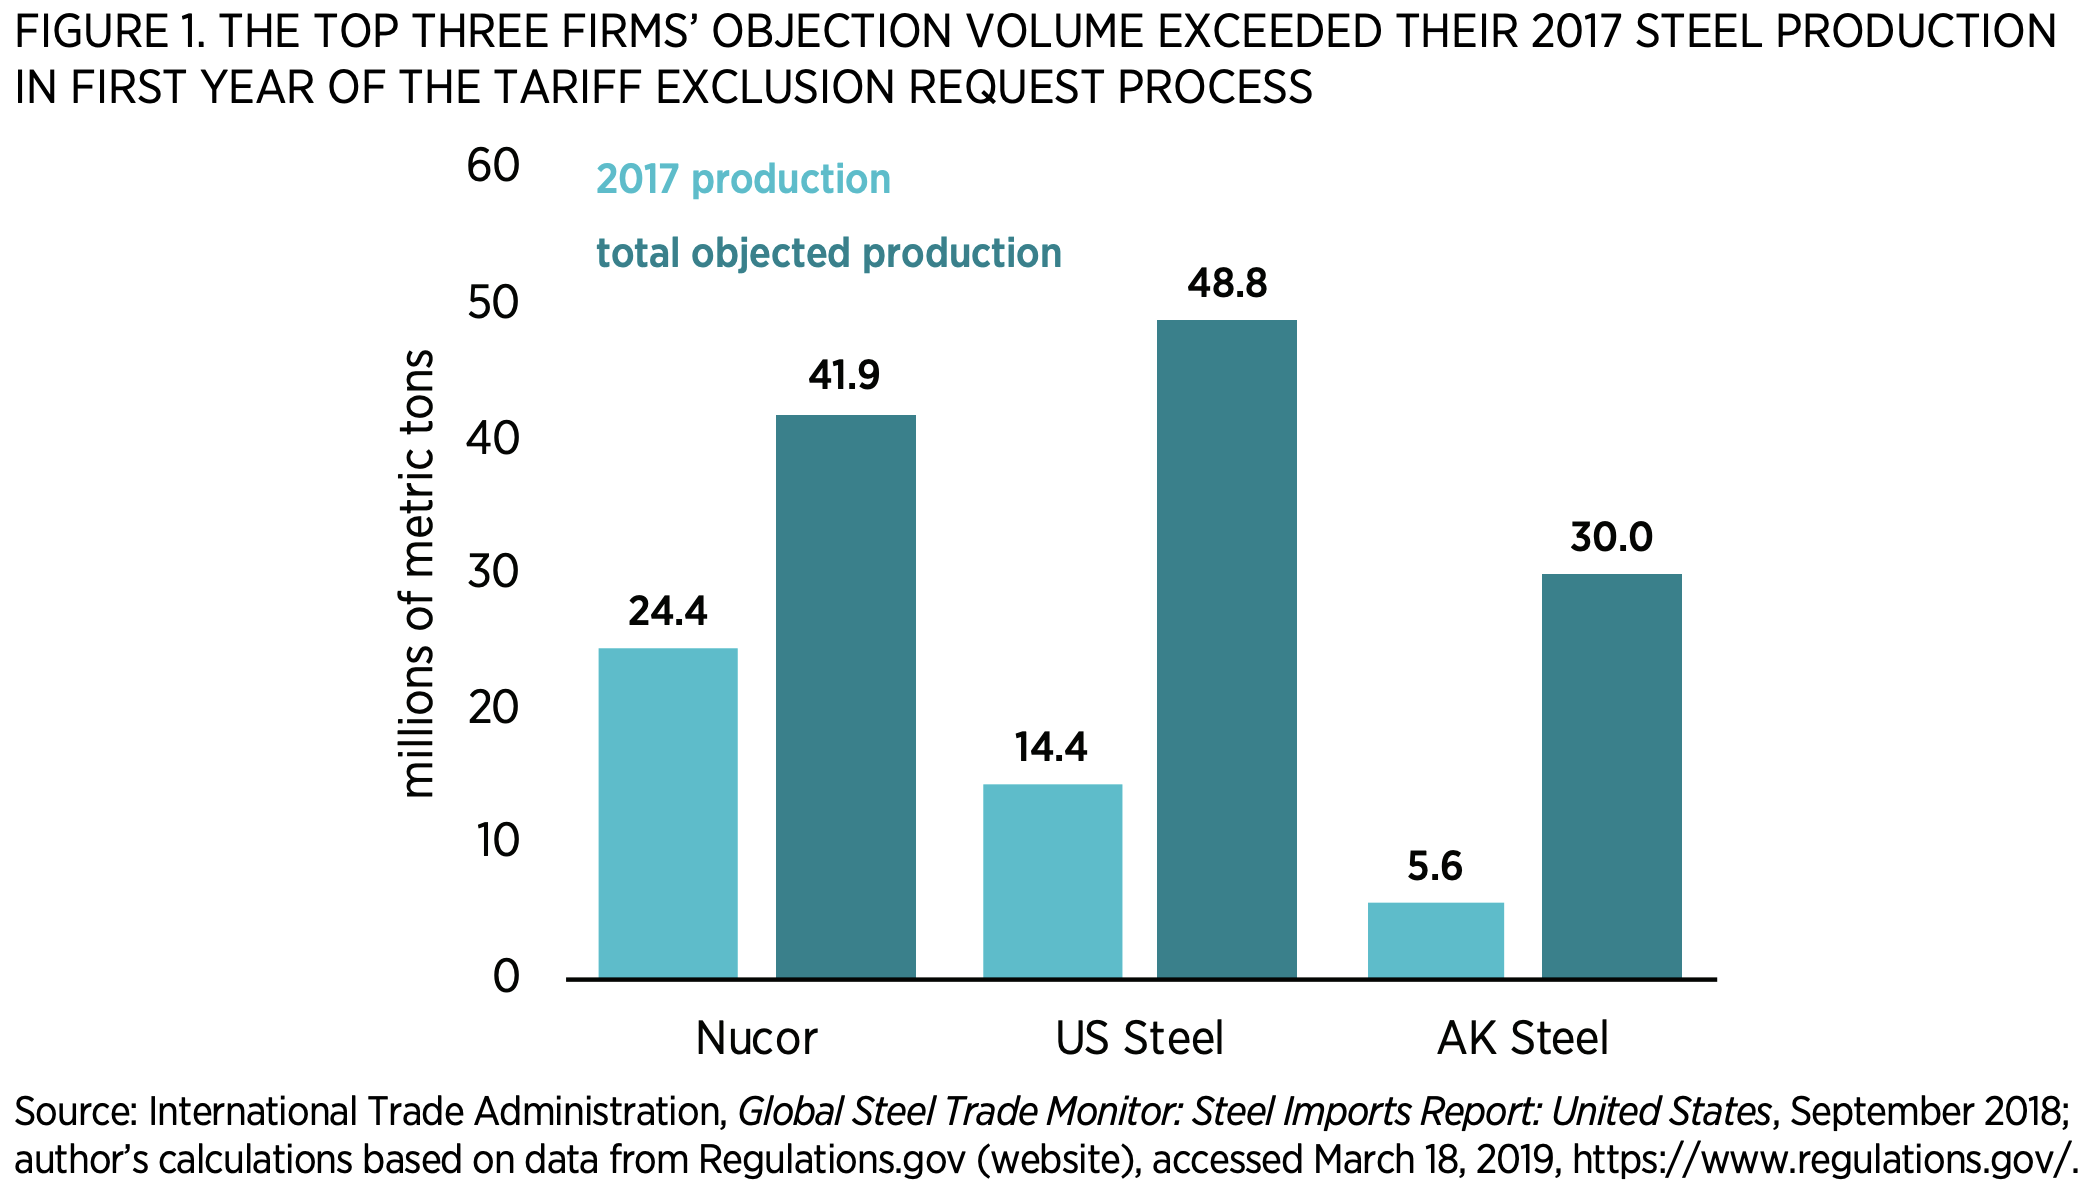 Figure 1. the Top Three Firms' Objection Volume Exceeded Their 2017 Steel Production in First Year of the Tariff Exclusion Request Process